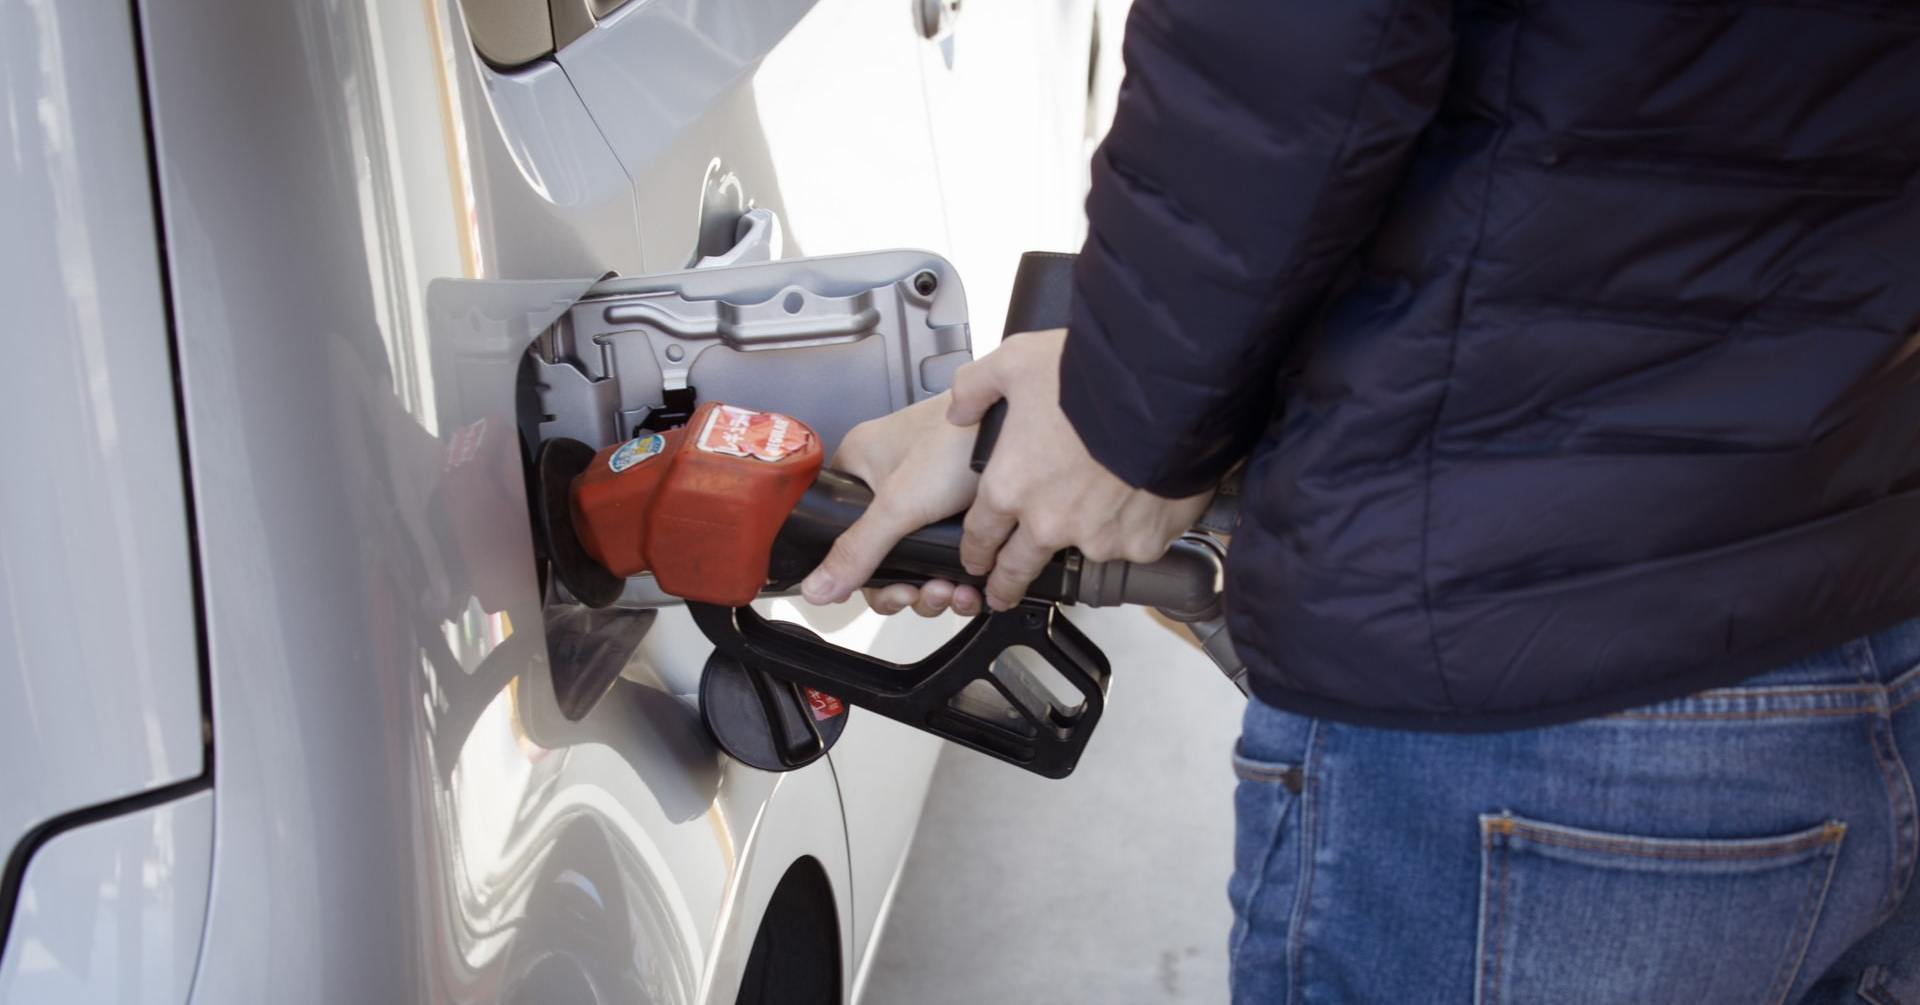 A person in a black coat and jeans putting gas in their car